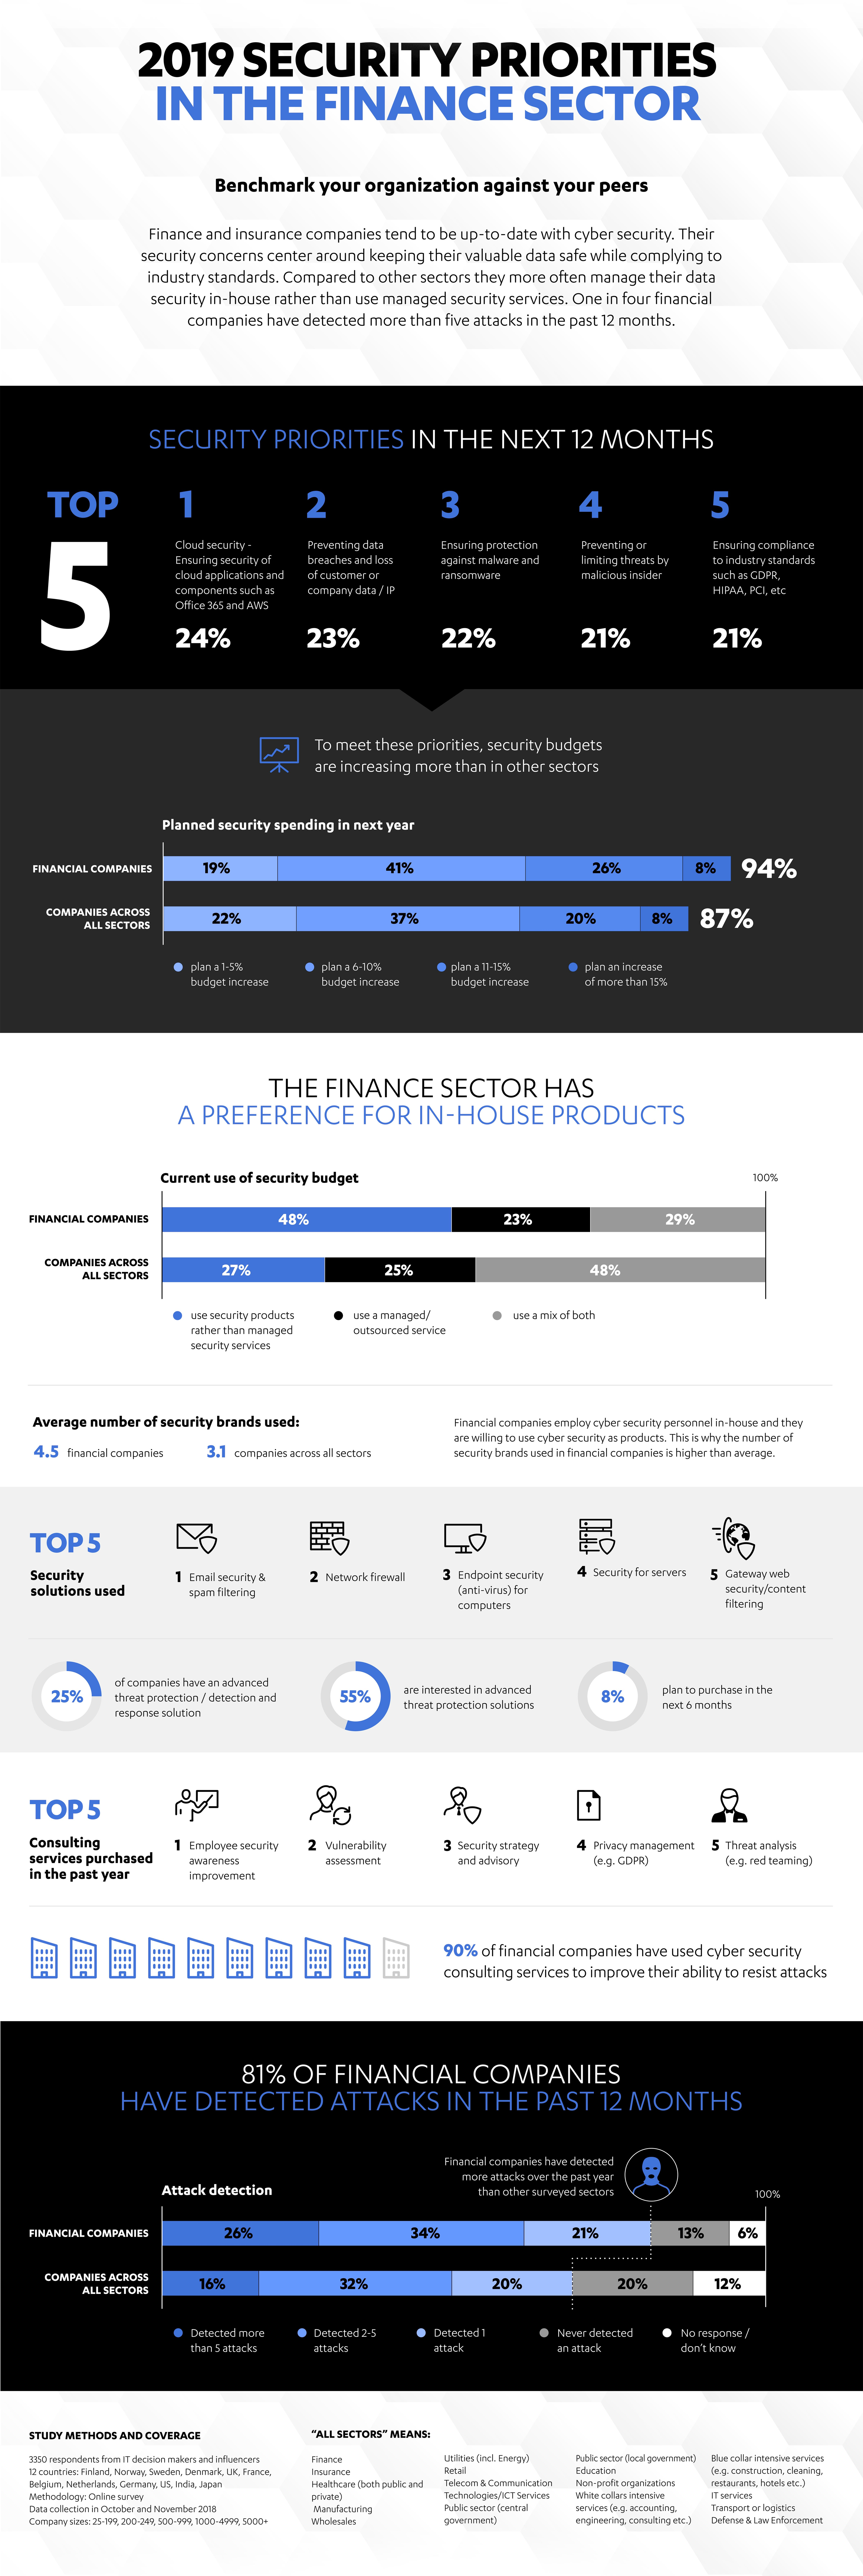 Vincimus 2019 security priorities in the finance sector infographic